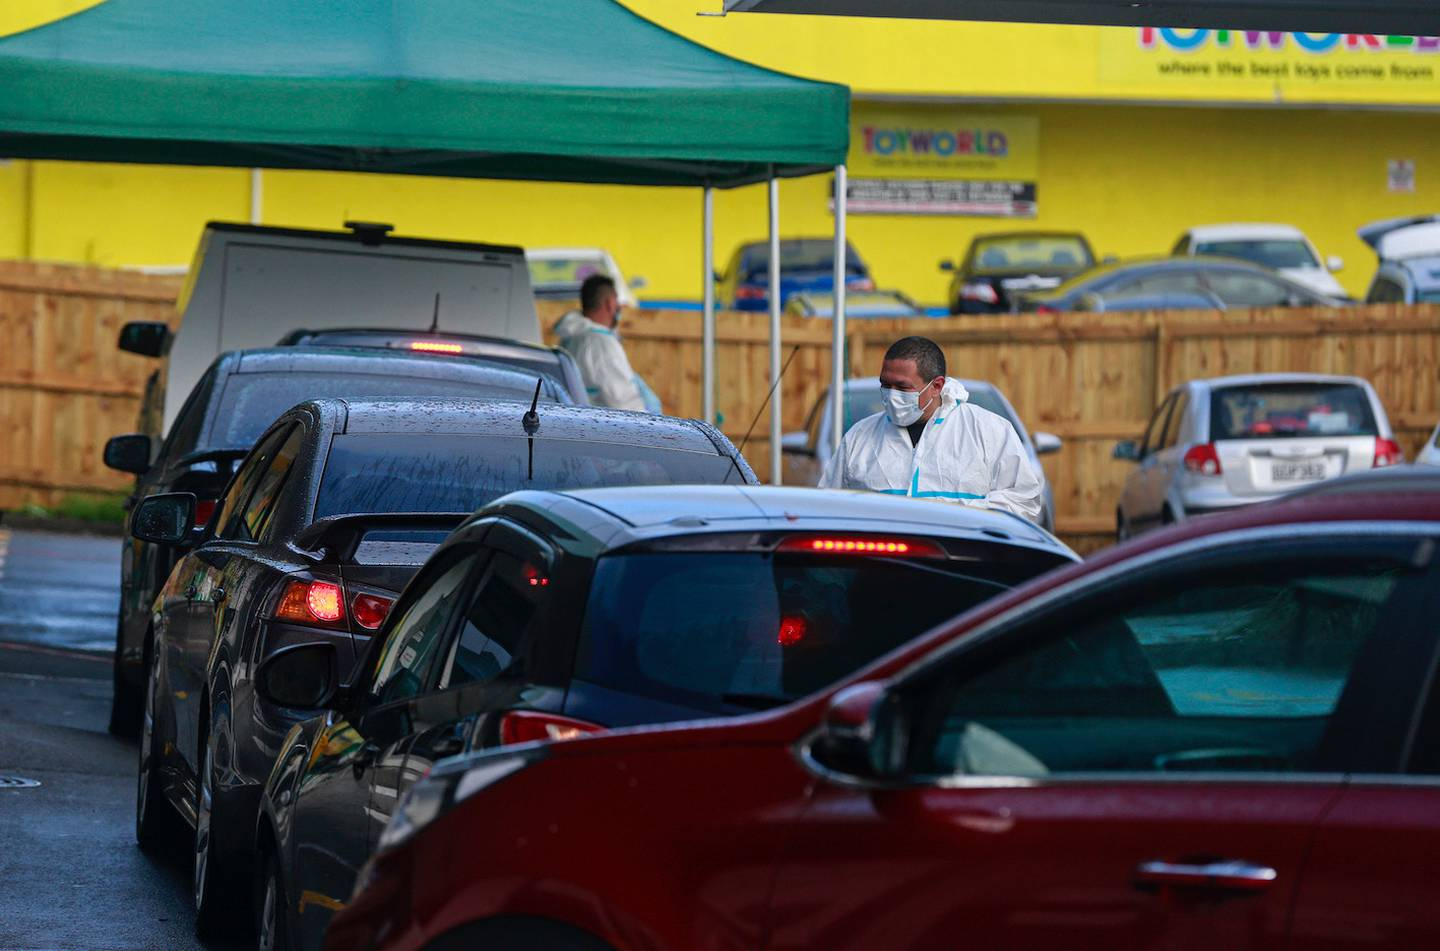 A busy morning at the Covid-19 testing station at the corner of Edsel St and Catherine St in...